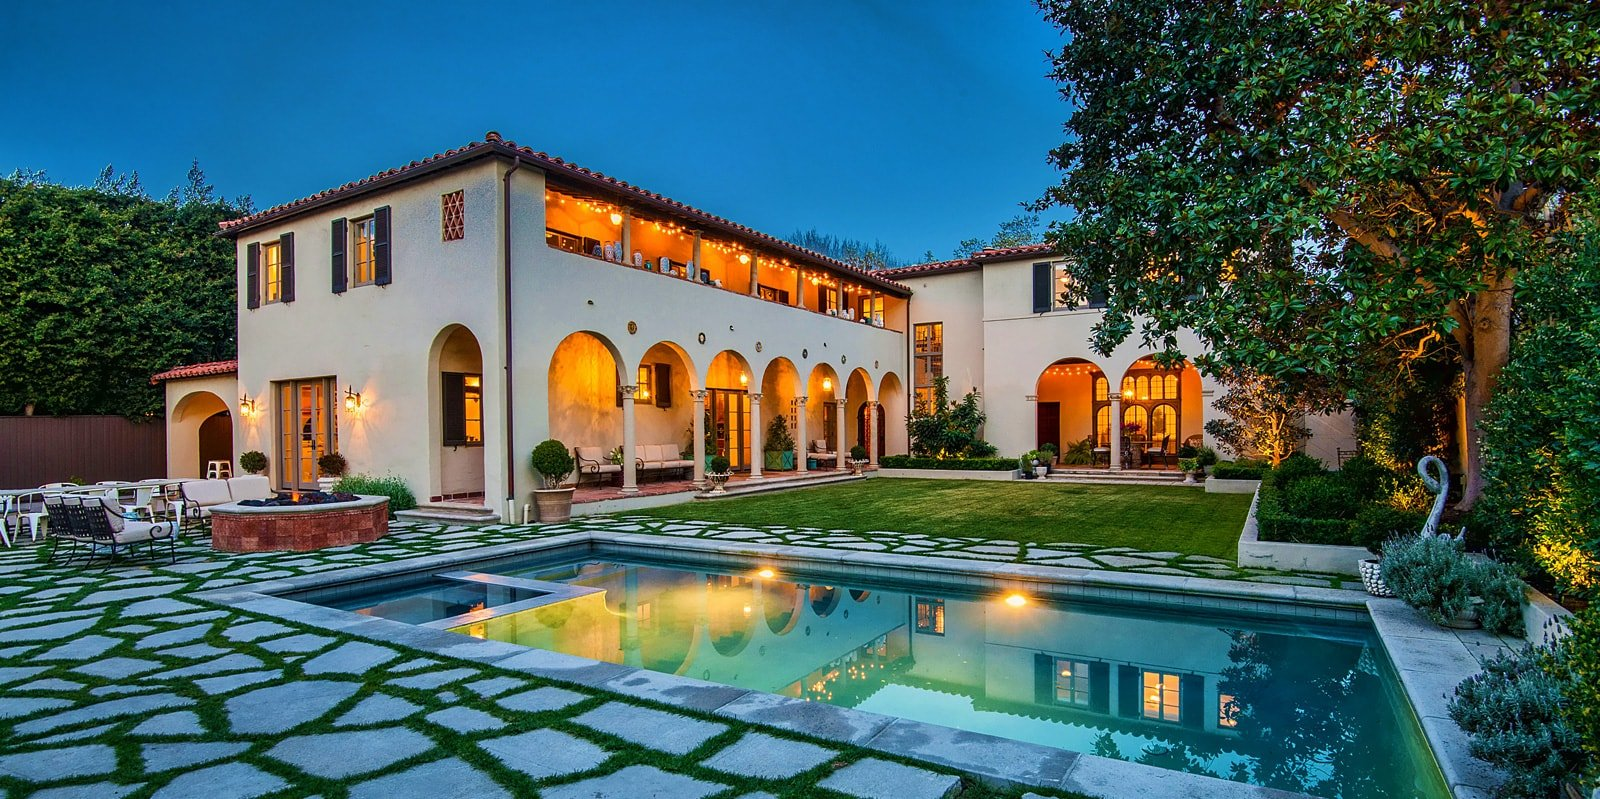 Find hancock park homes for sale with swimming pools top - Homes with swimming pools for sale ...